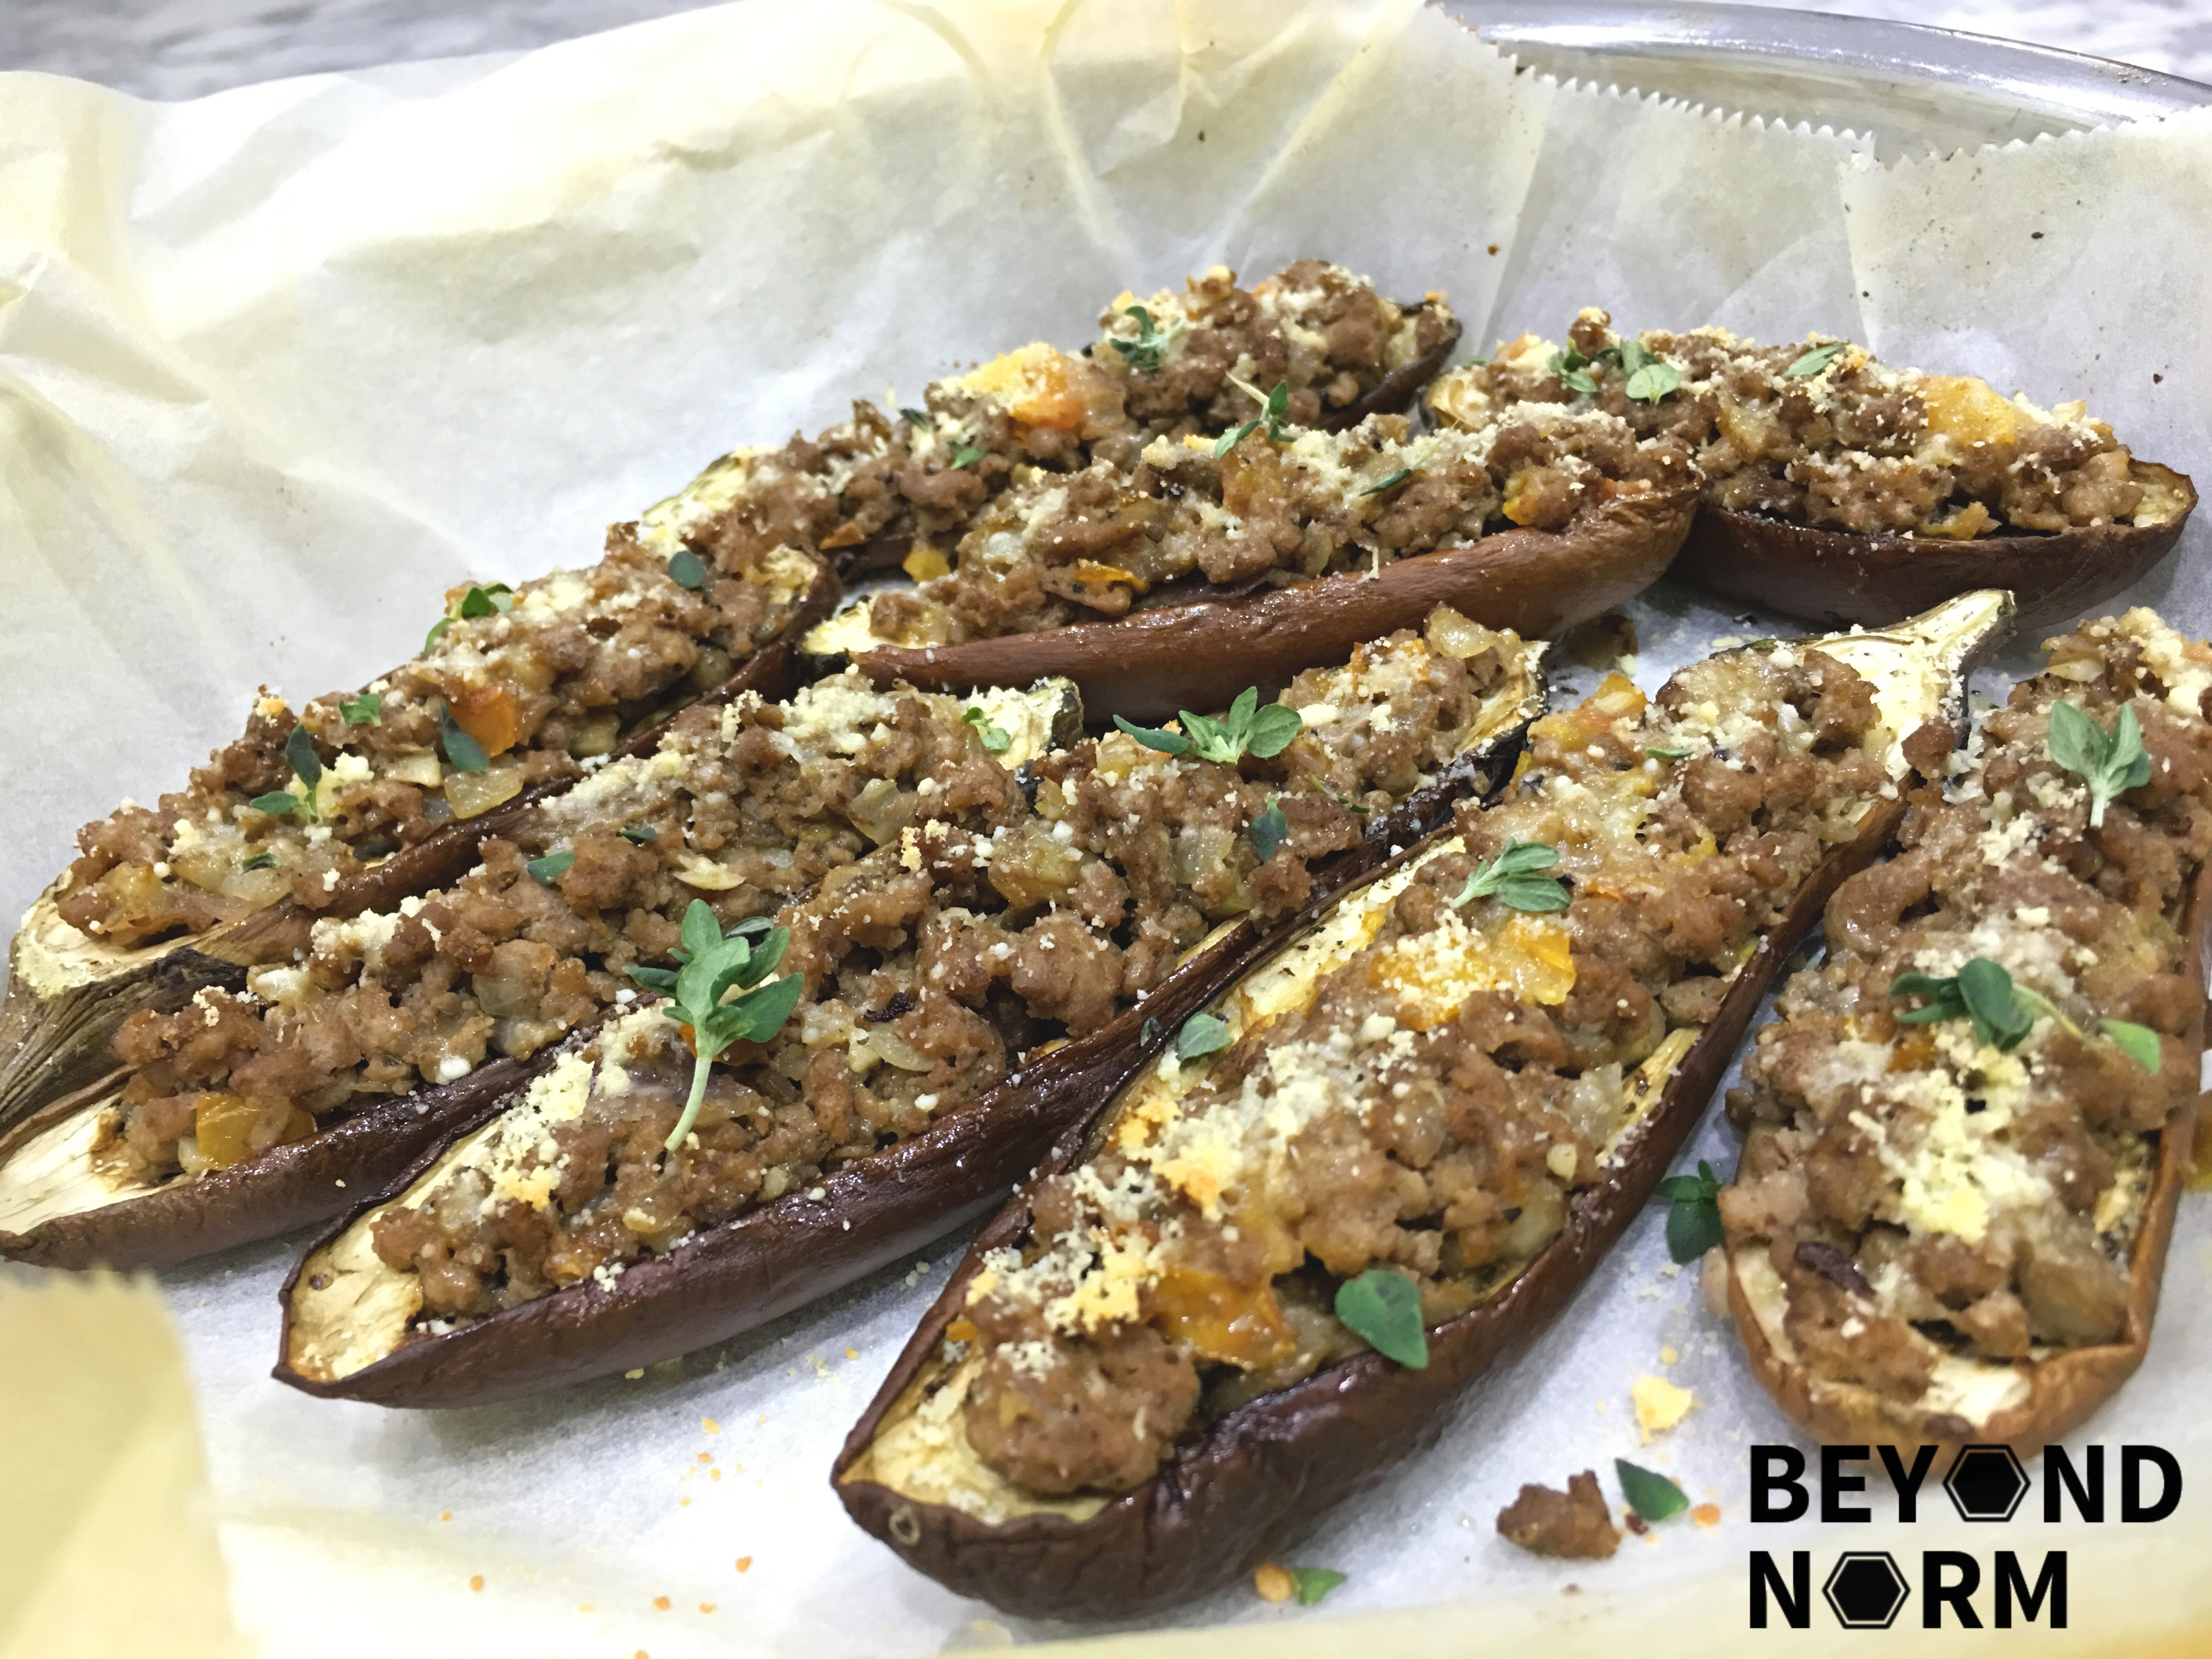 Stuffed Aubergines with Spiced Minced Meat